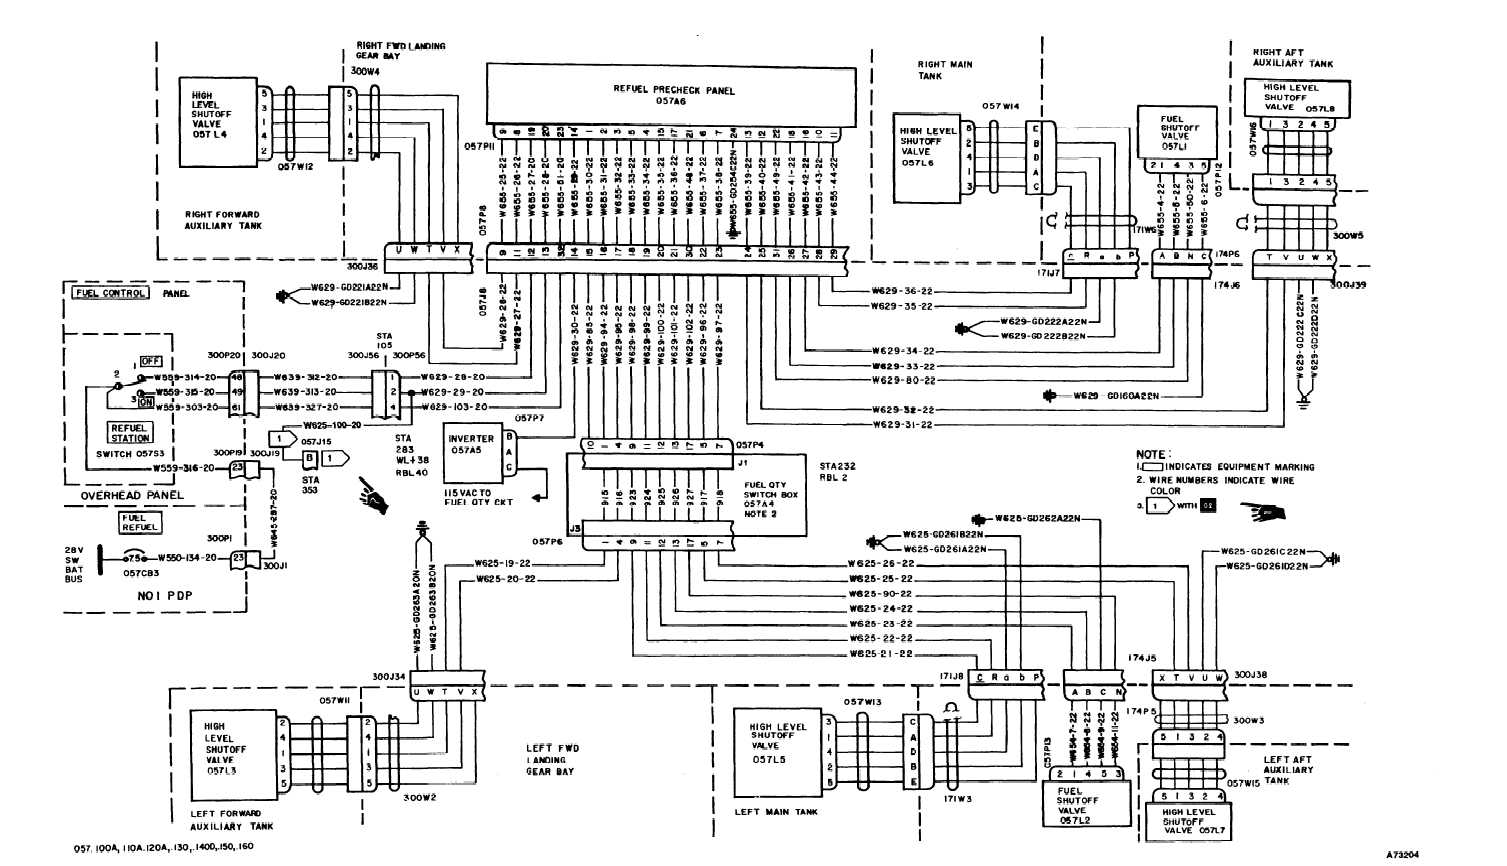 light switch wiring diagrams pdf with Tm 55 1520 240 T 3 178 on Three Way Switch Option8 moreover 549791066982388219 moreover Generator Changeover Panels also Page 2 together with Cooling System Problemscheck Engine Lite On.